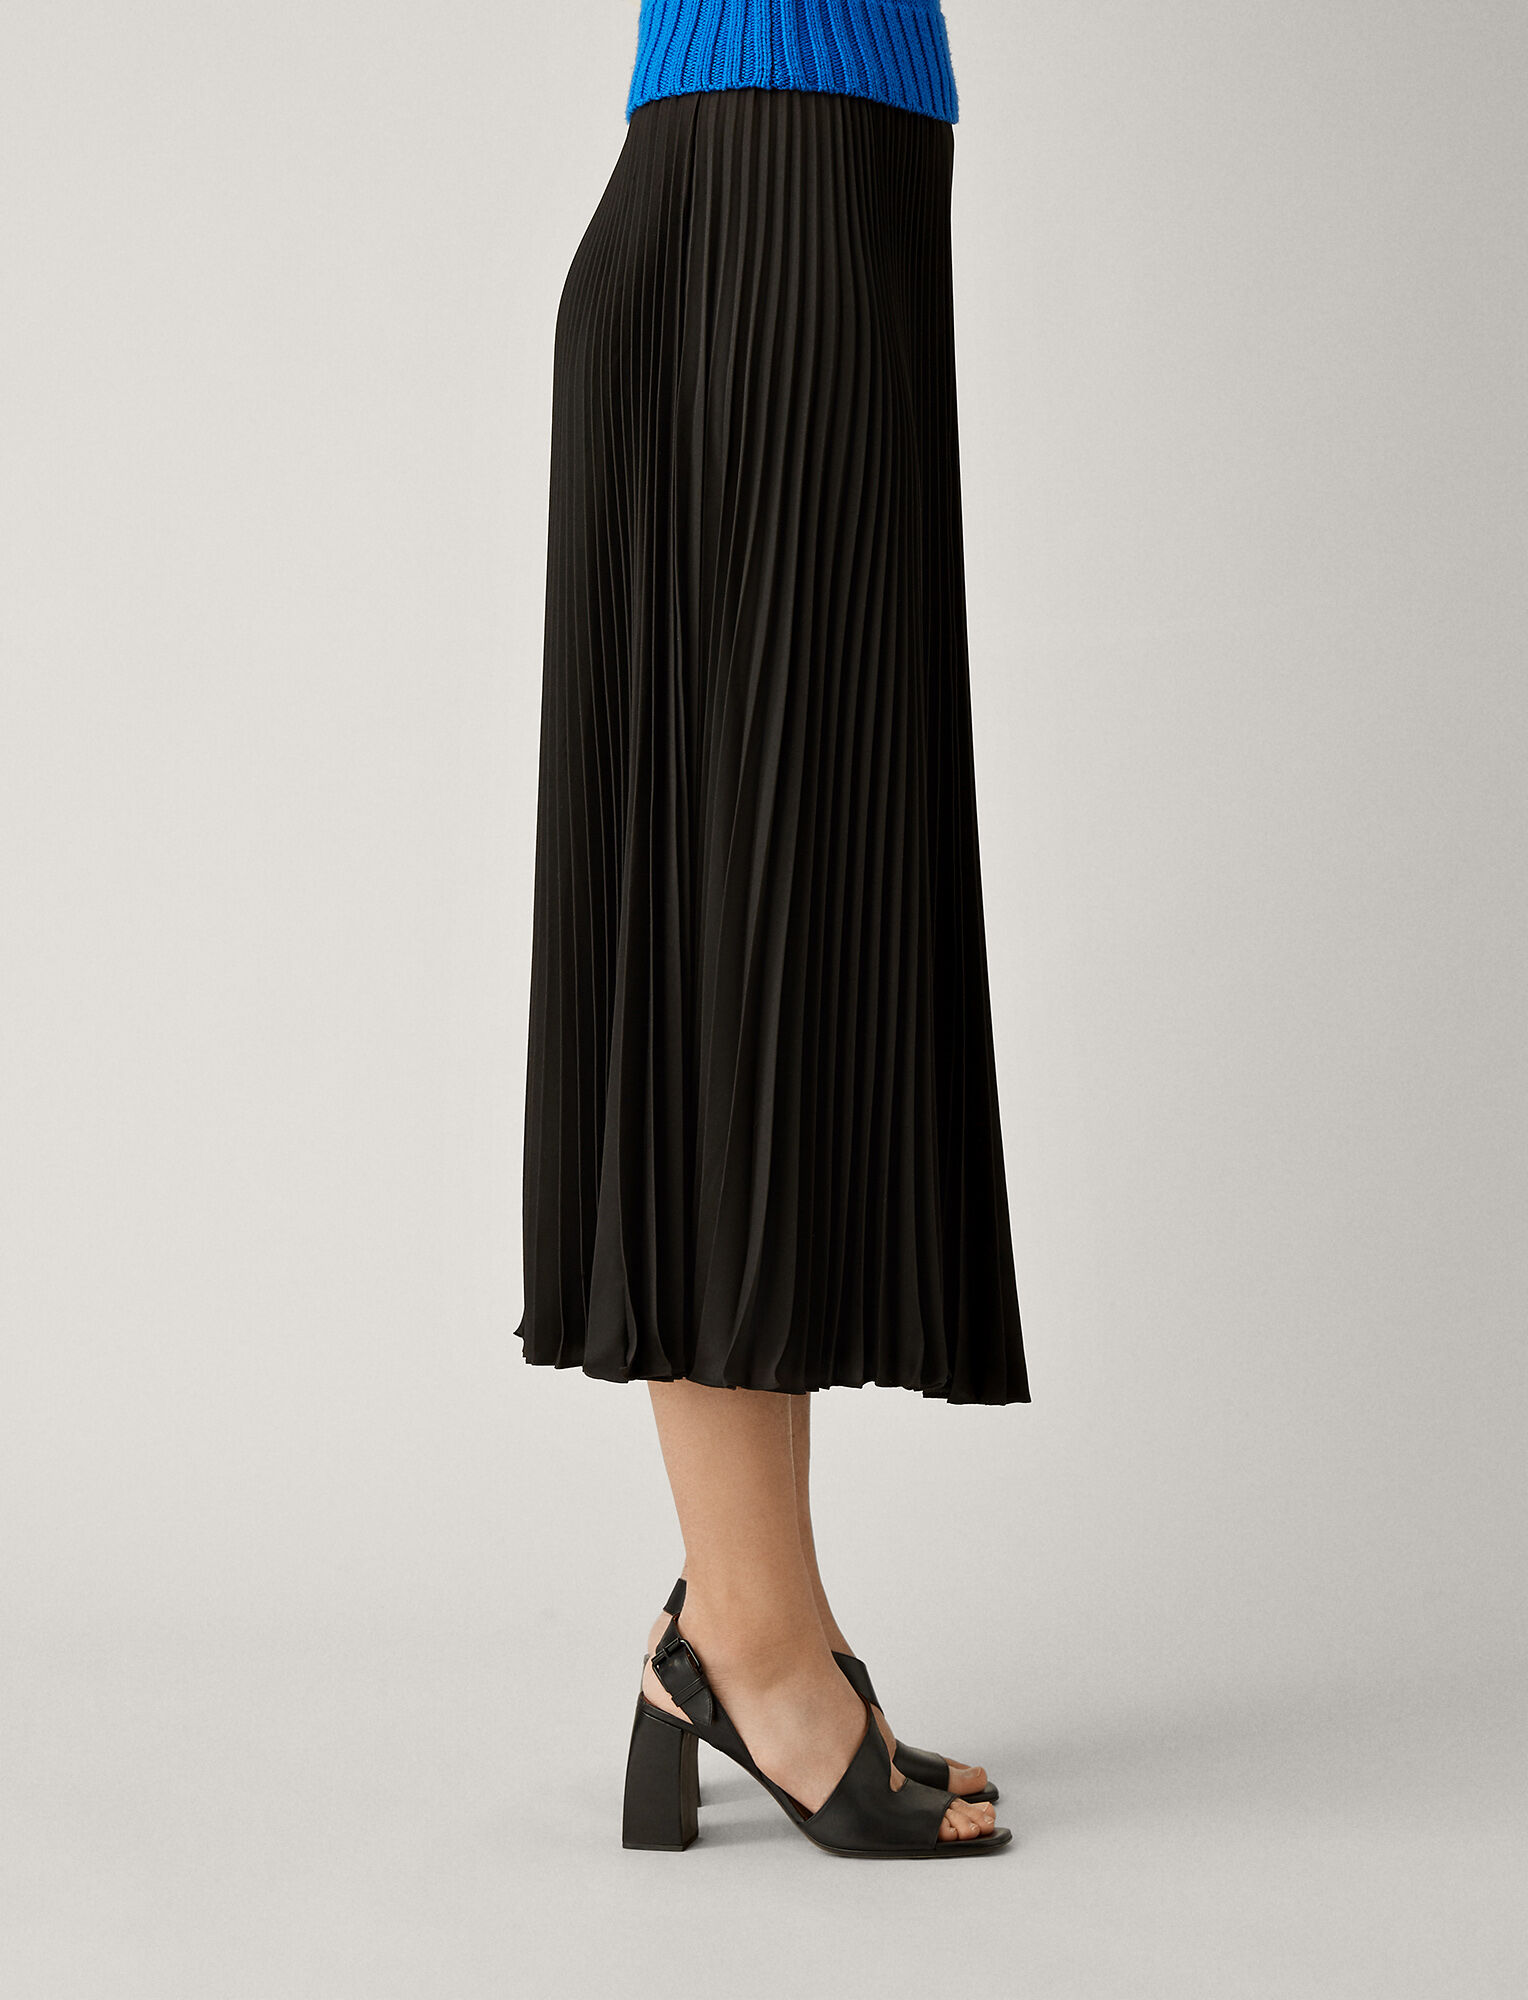 Joseph, Abbot Pleated Toile Skirt, in BLACK